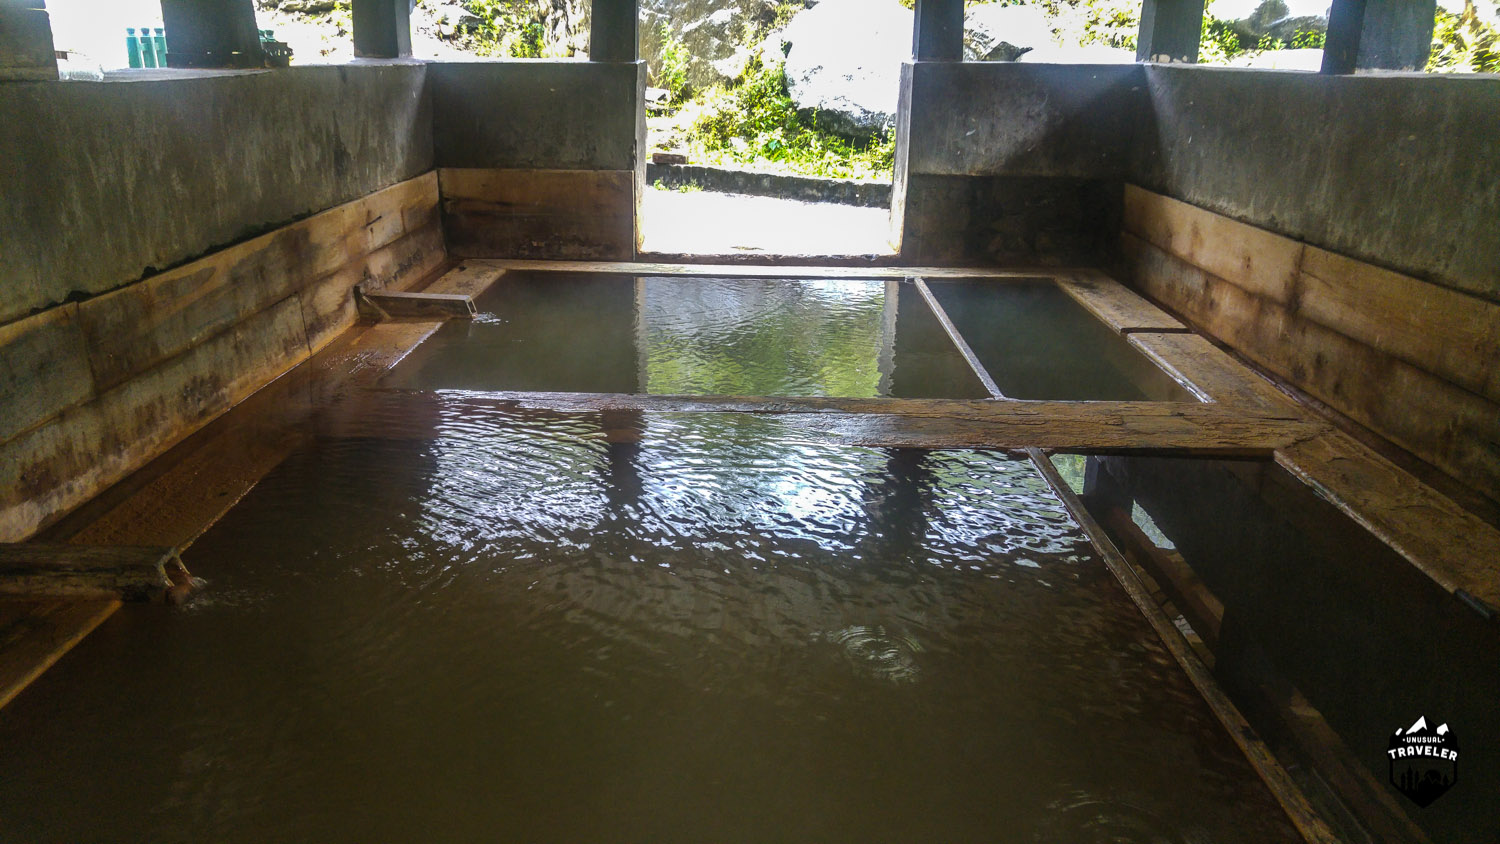 Two of the complexes hold two hot springs inside, the small section on the right is more sallow and made for kids.